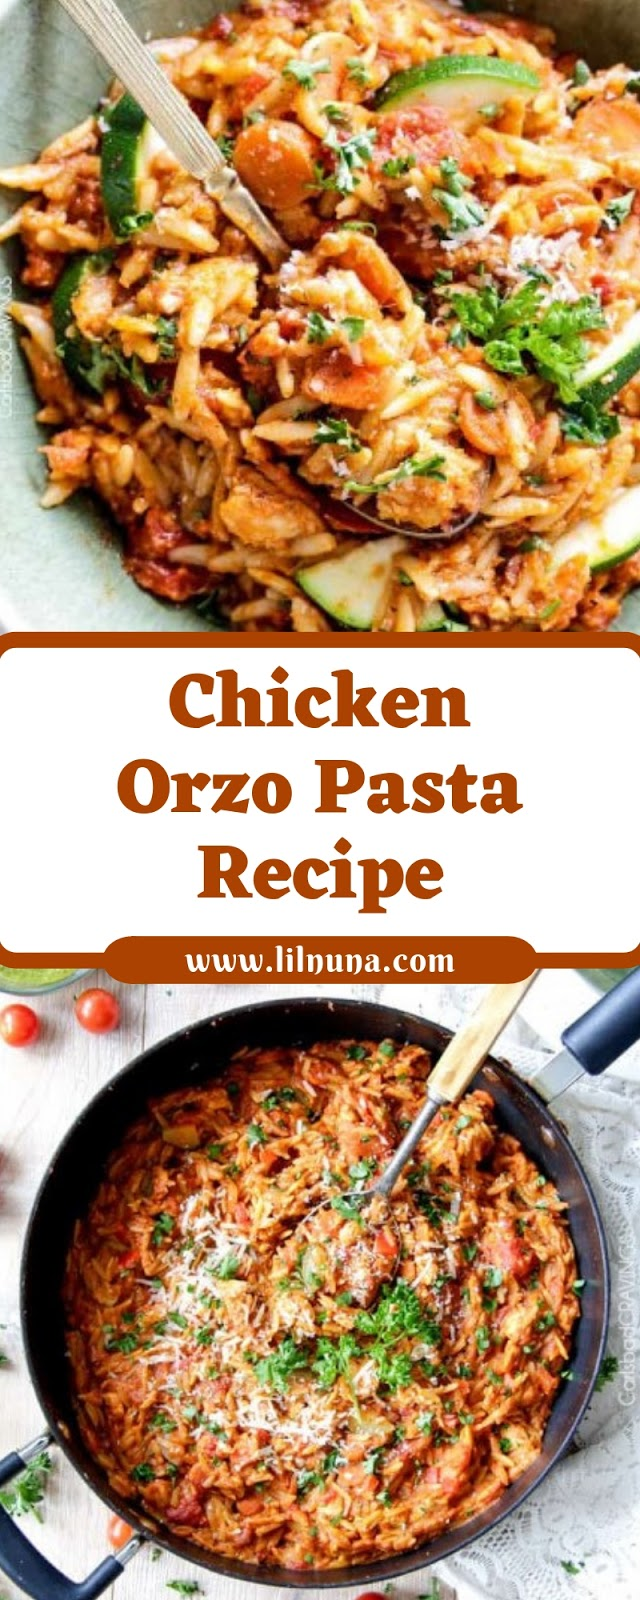 Chicken Orzo Pasta Recipe